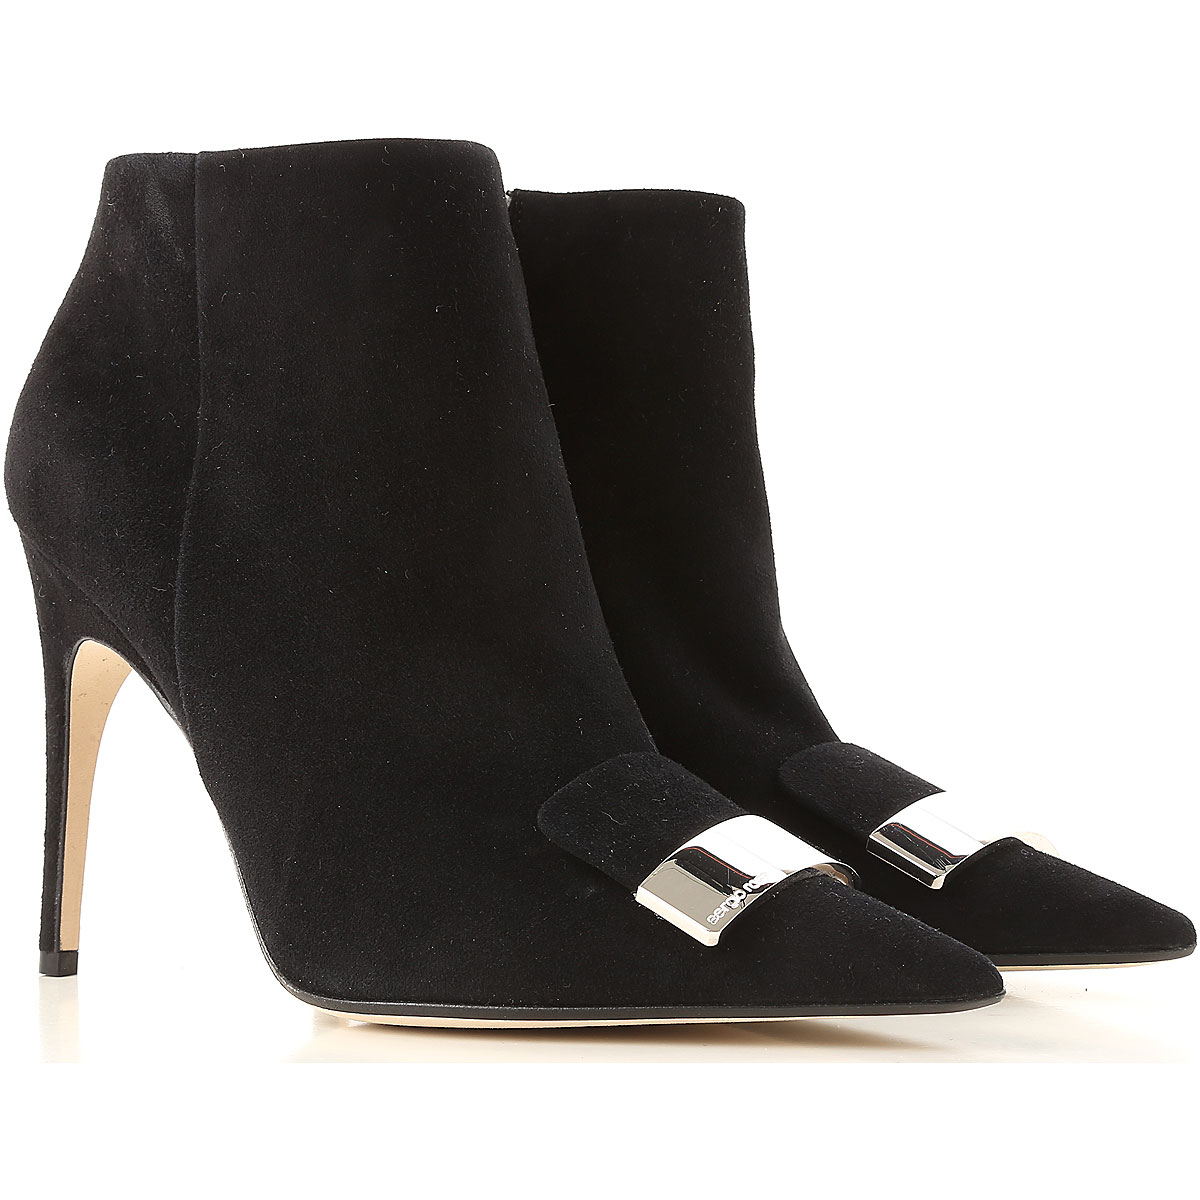 Sergio Rossi Boots for Women, Booties On Sale in Outlet, Black, Leather, 2019, 10 5 6.5 8.5